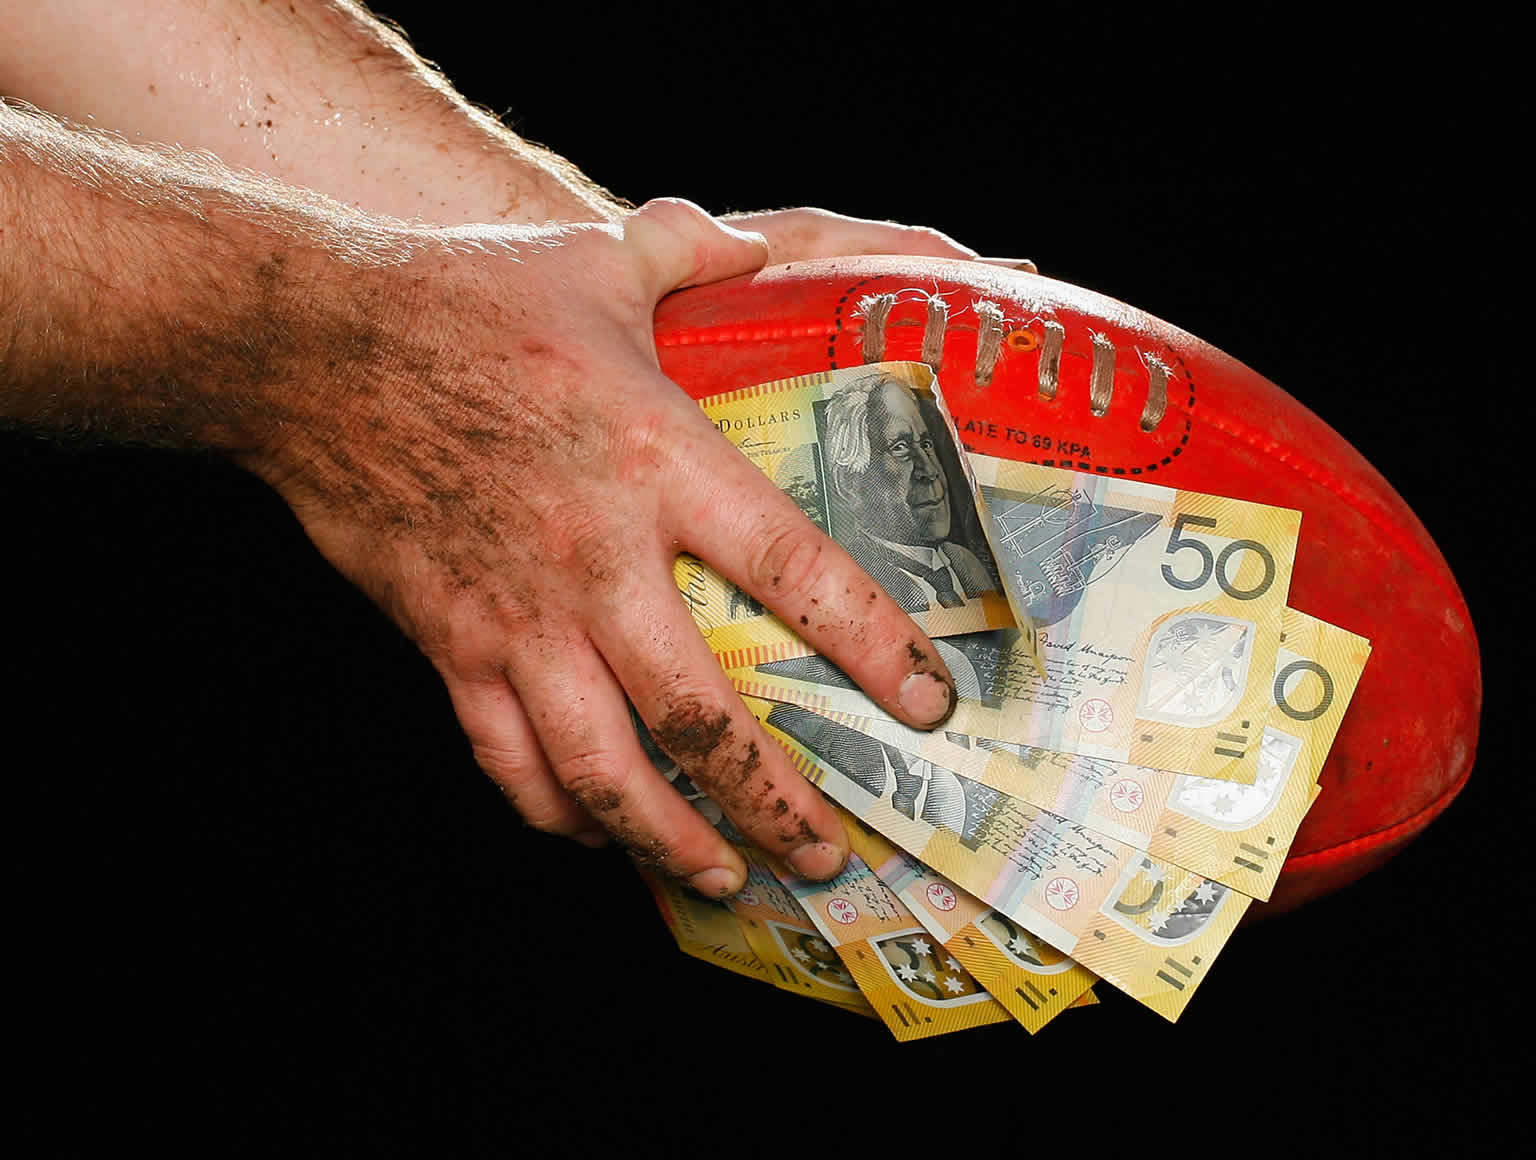 Hands covered in dirt holding a football with a bunch of $50 notes